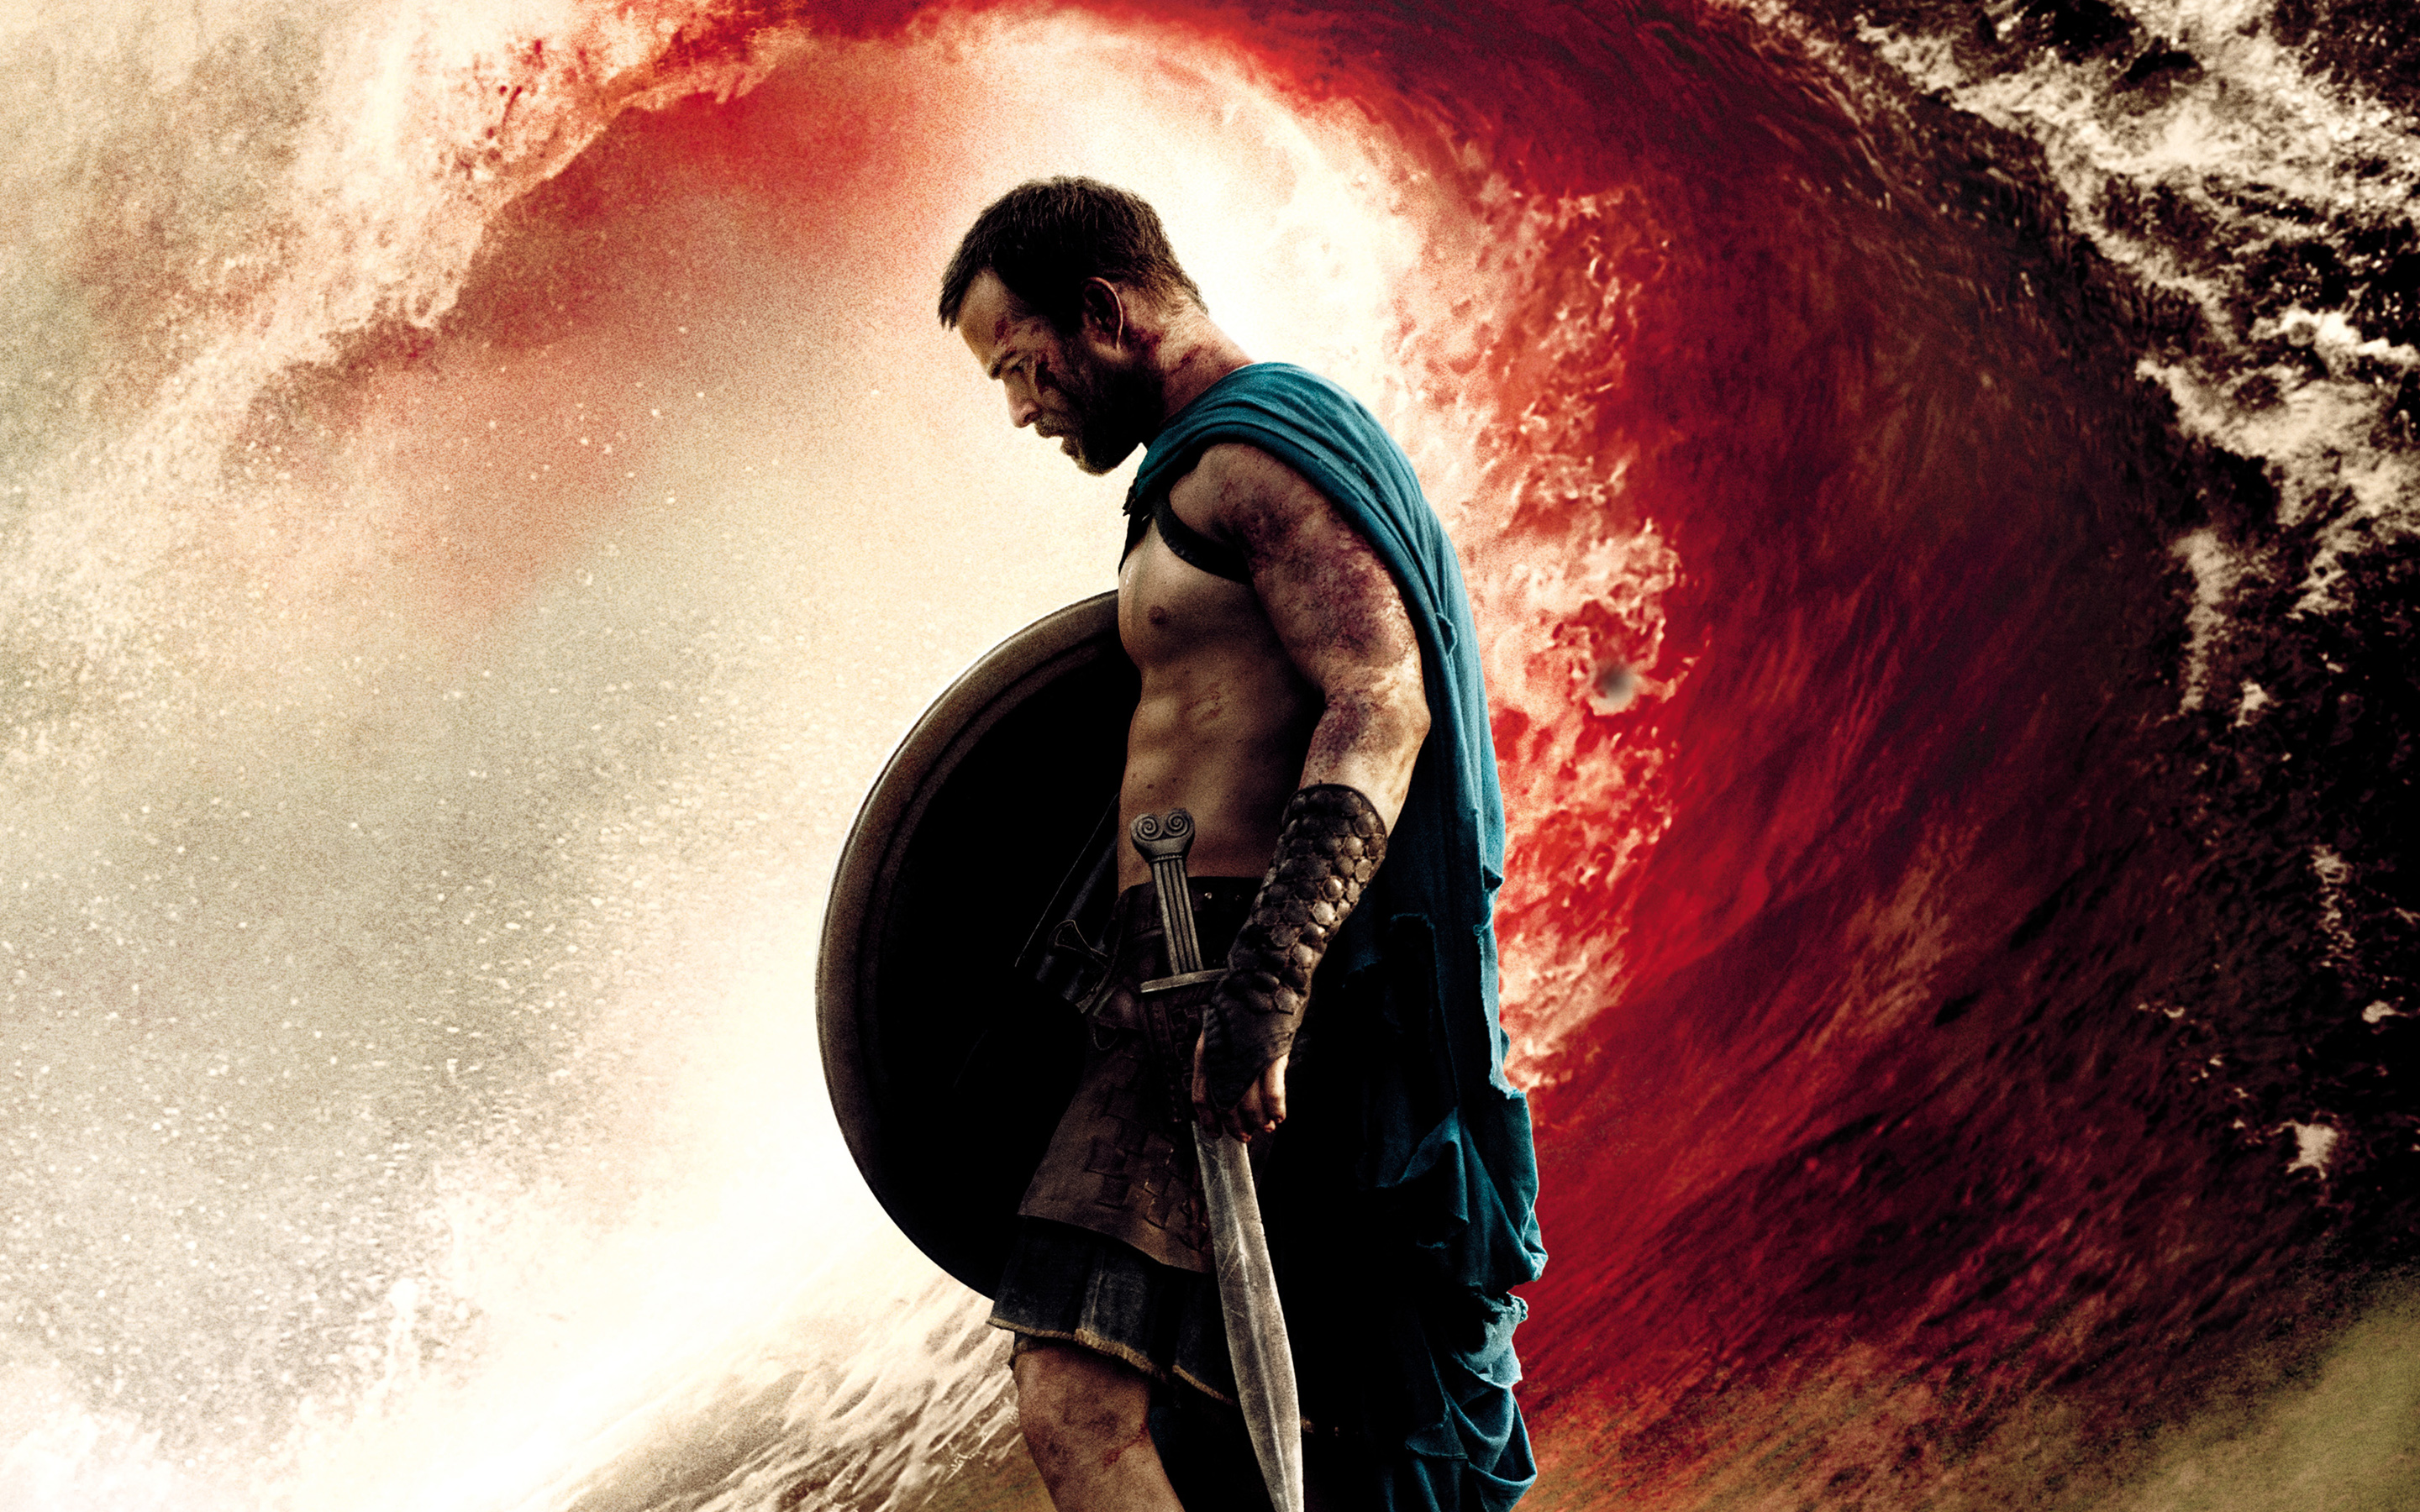 2880x1800 - 300: Rise of an Empire Wallpapers 16